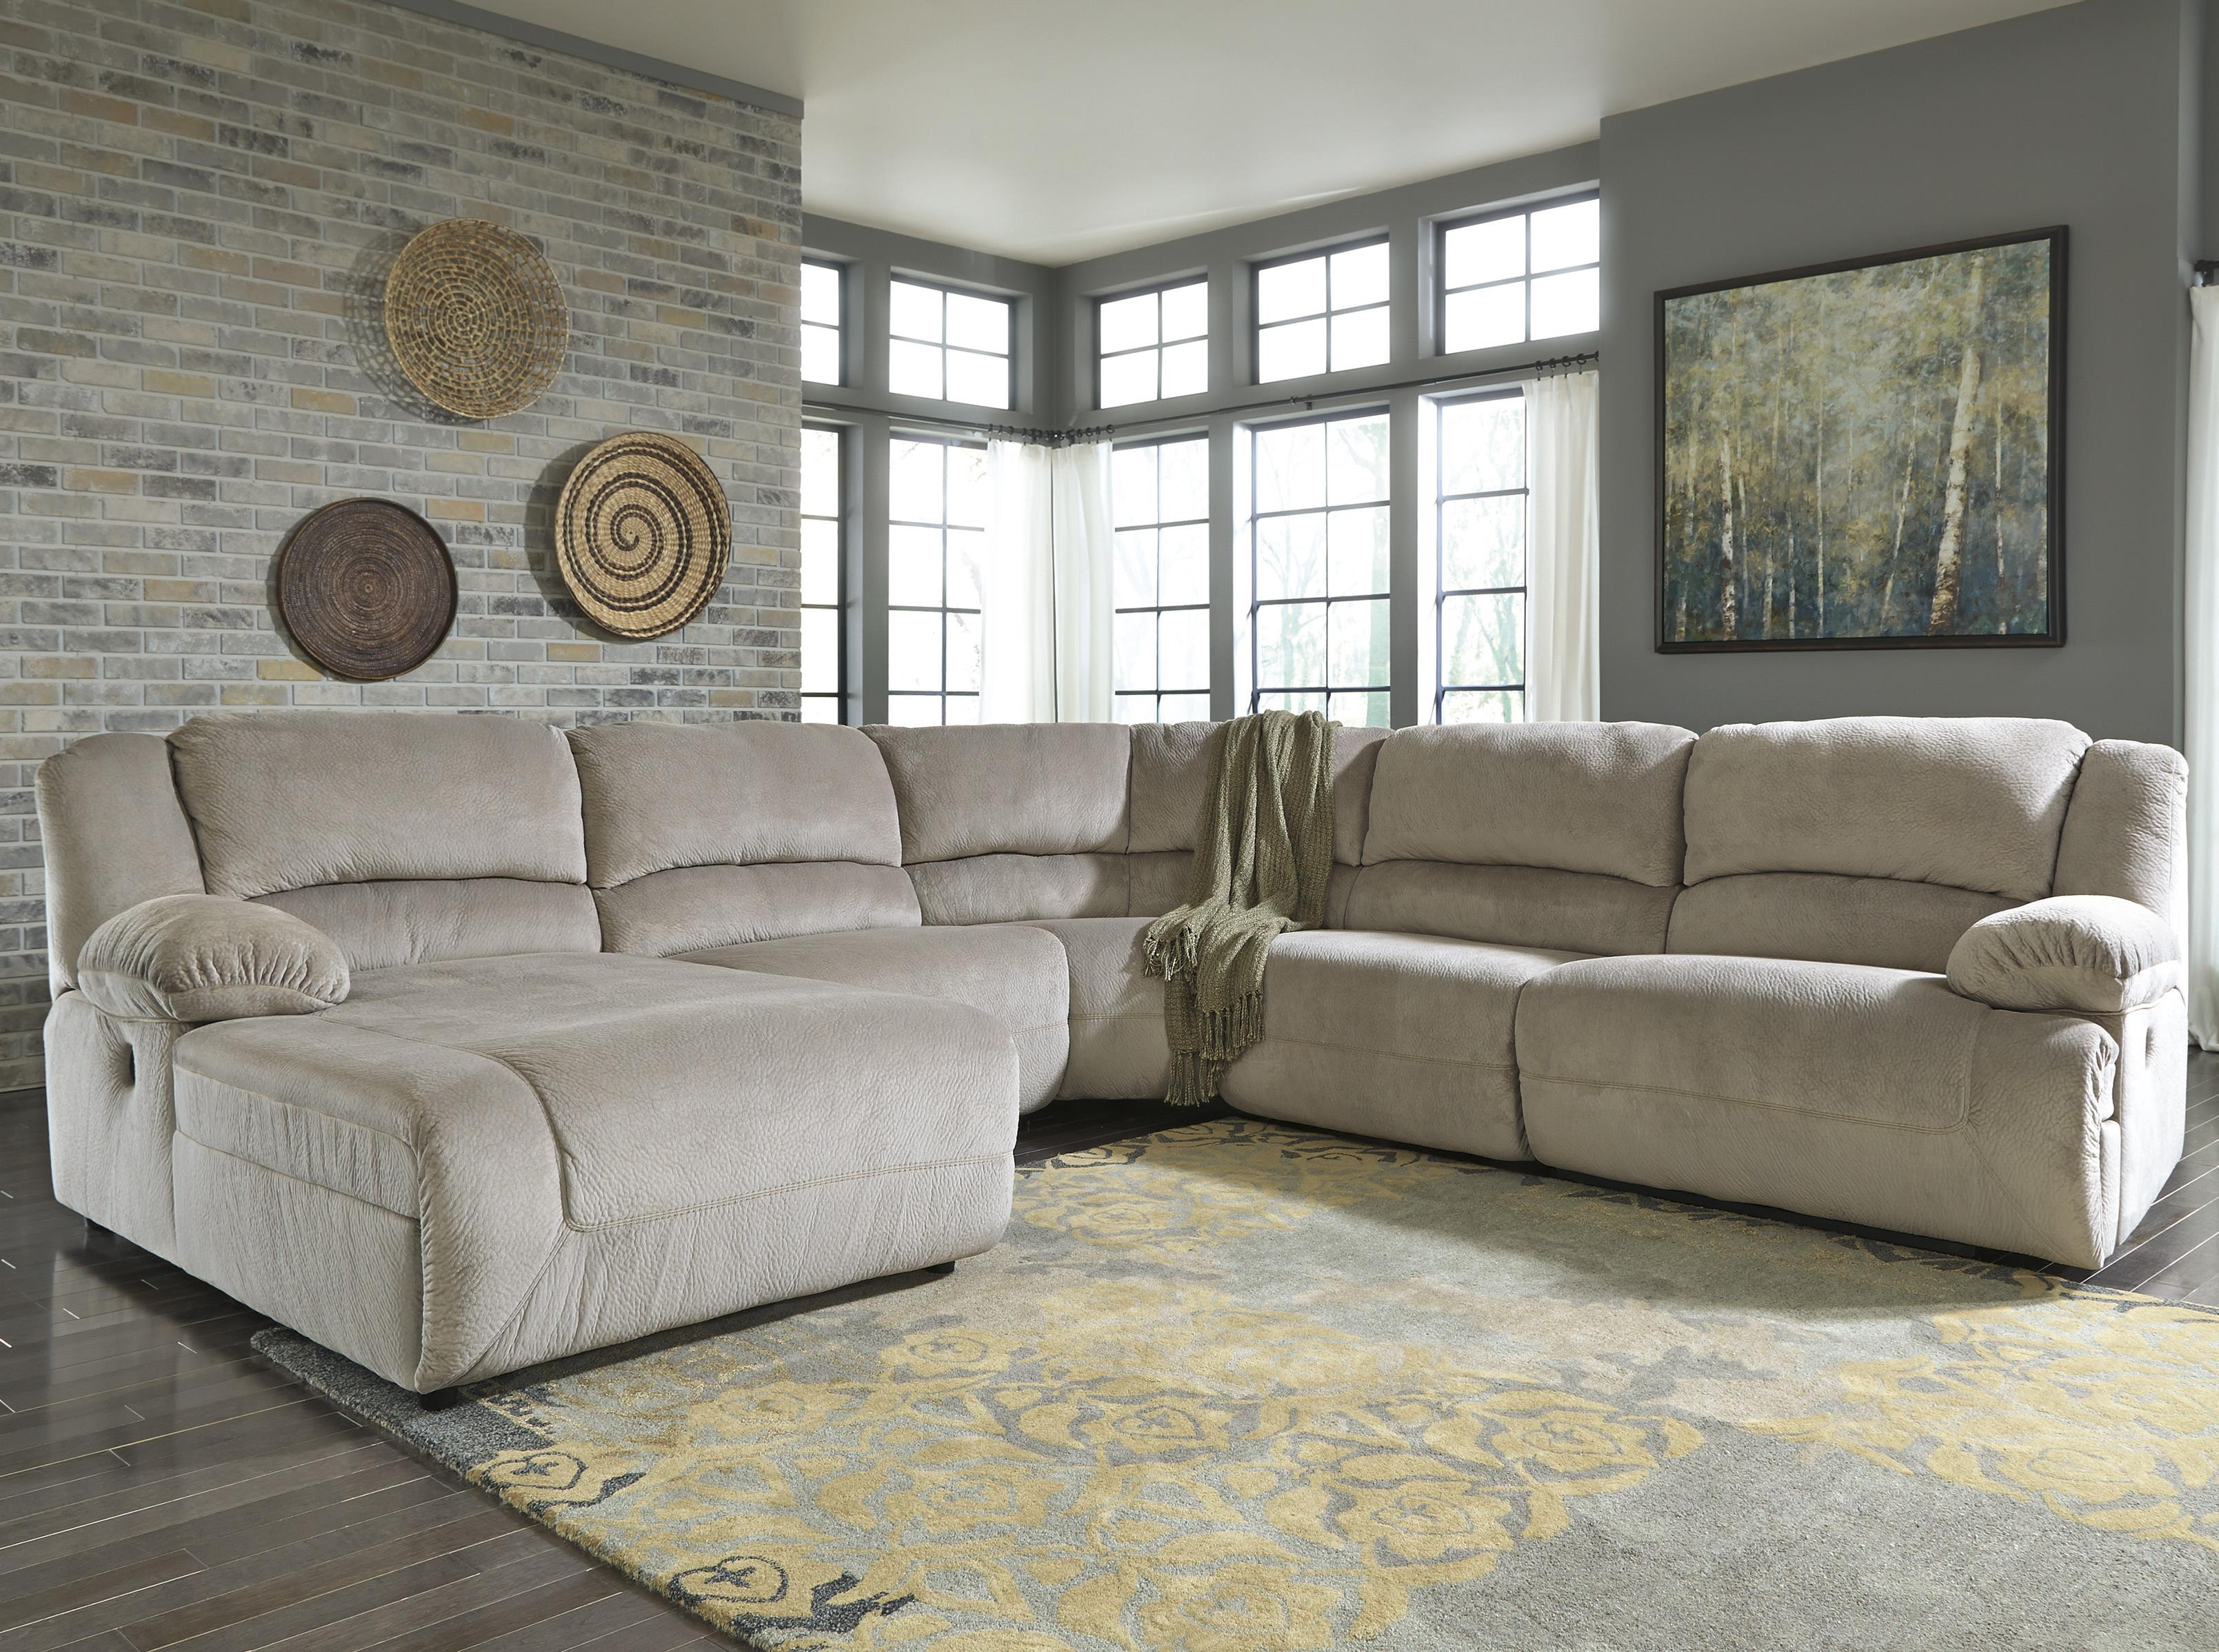 Signature Design by Ashley Toletta - Granite Power Reclining Sectional with Chaise - Item Number: 5670379+46+77+19+62